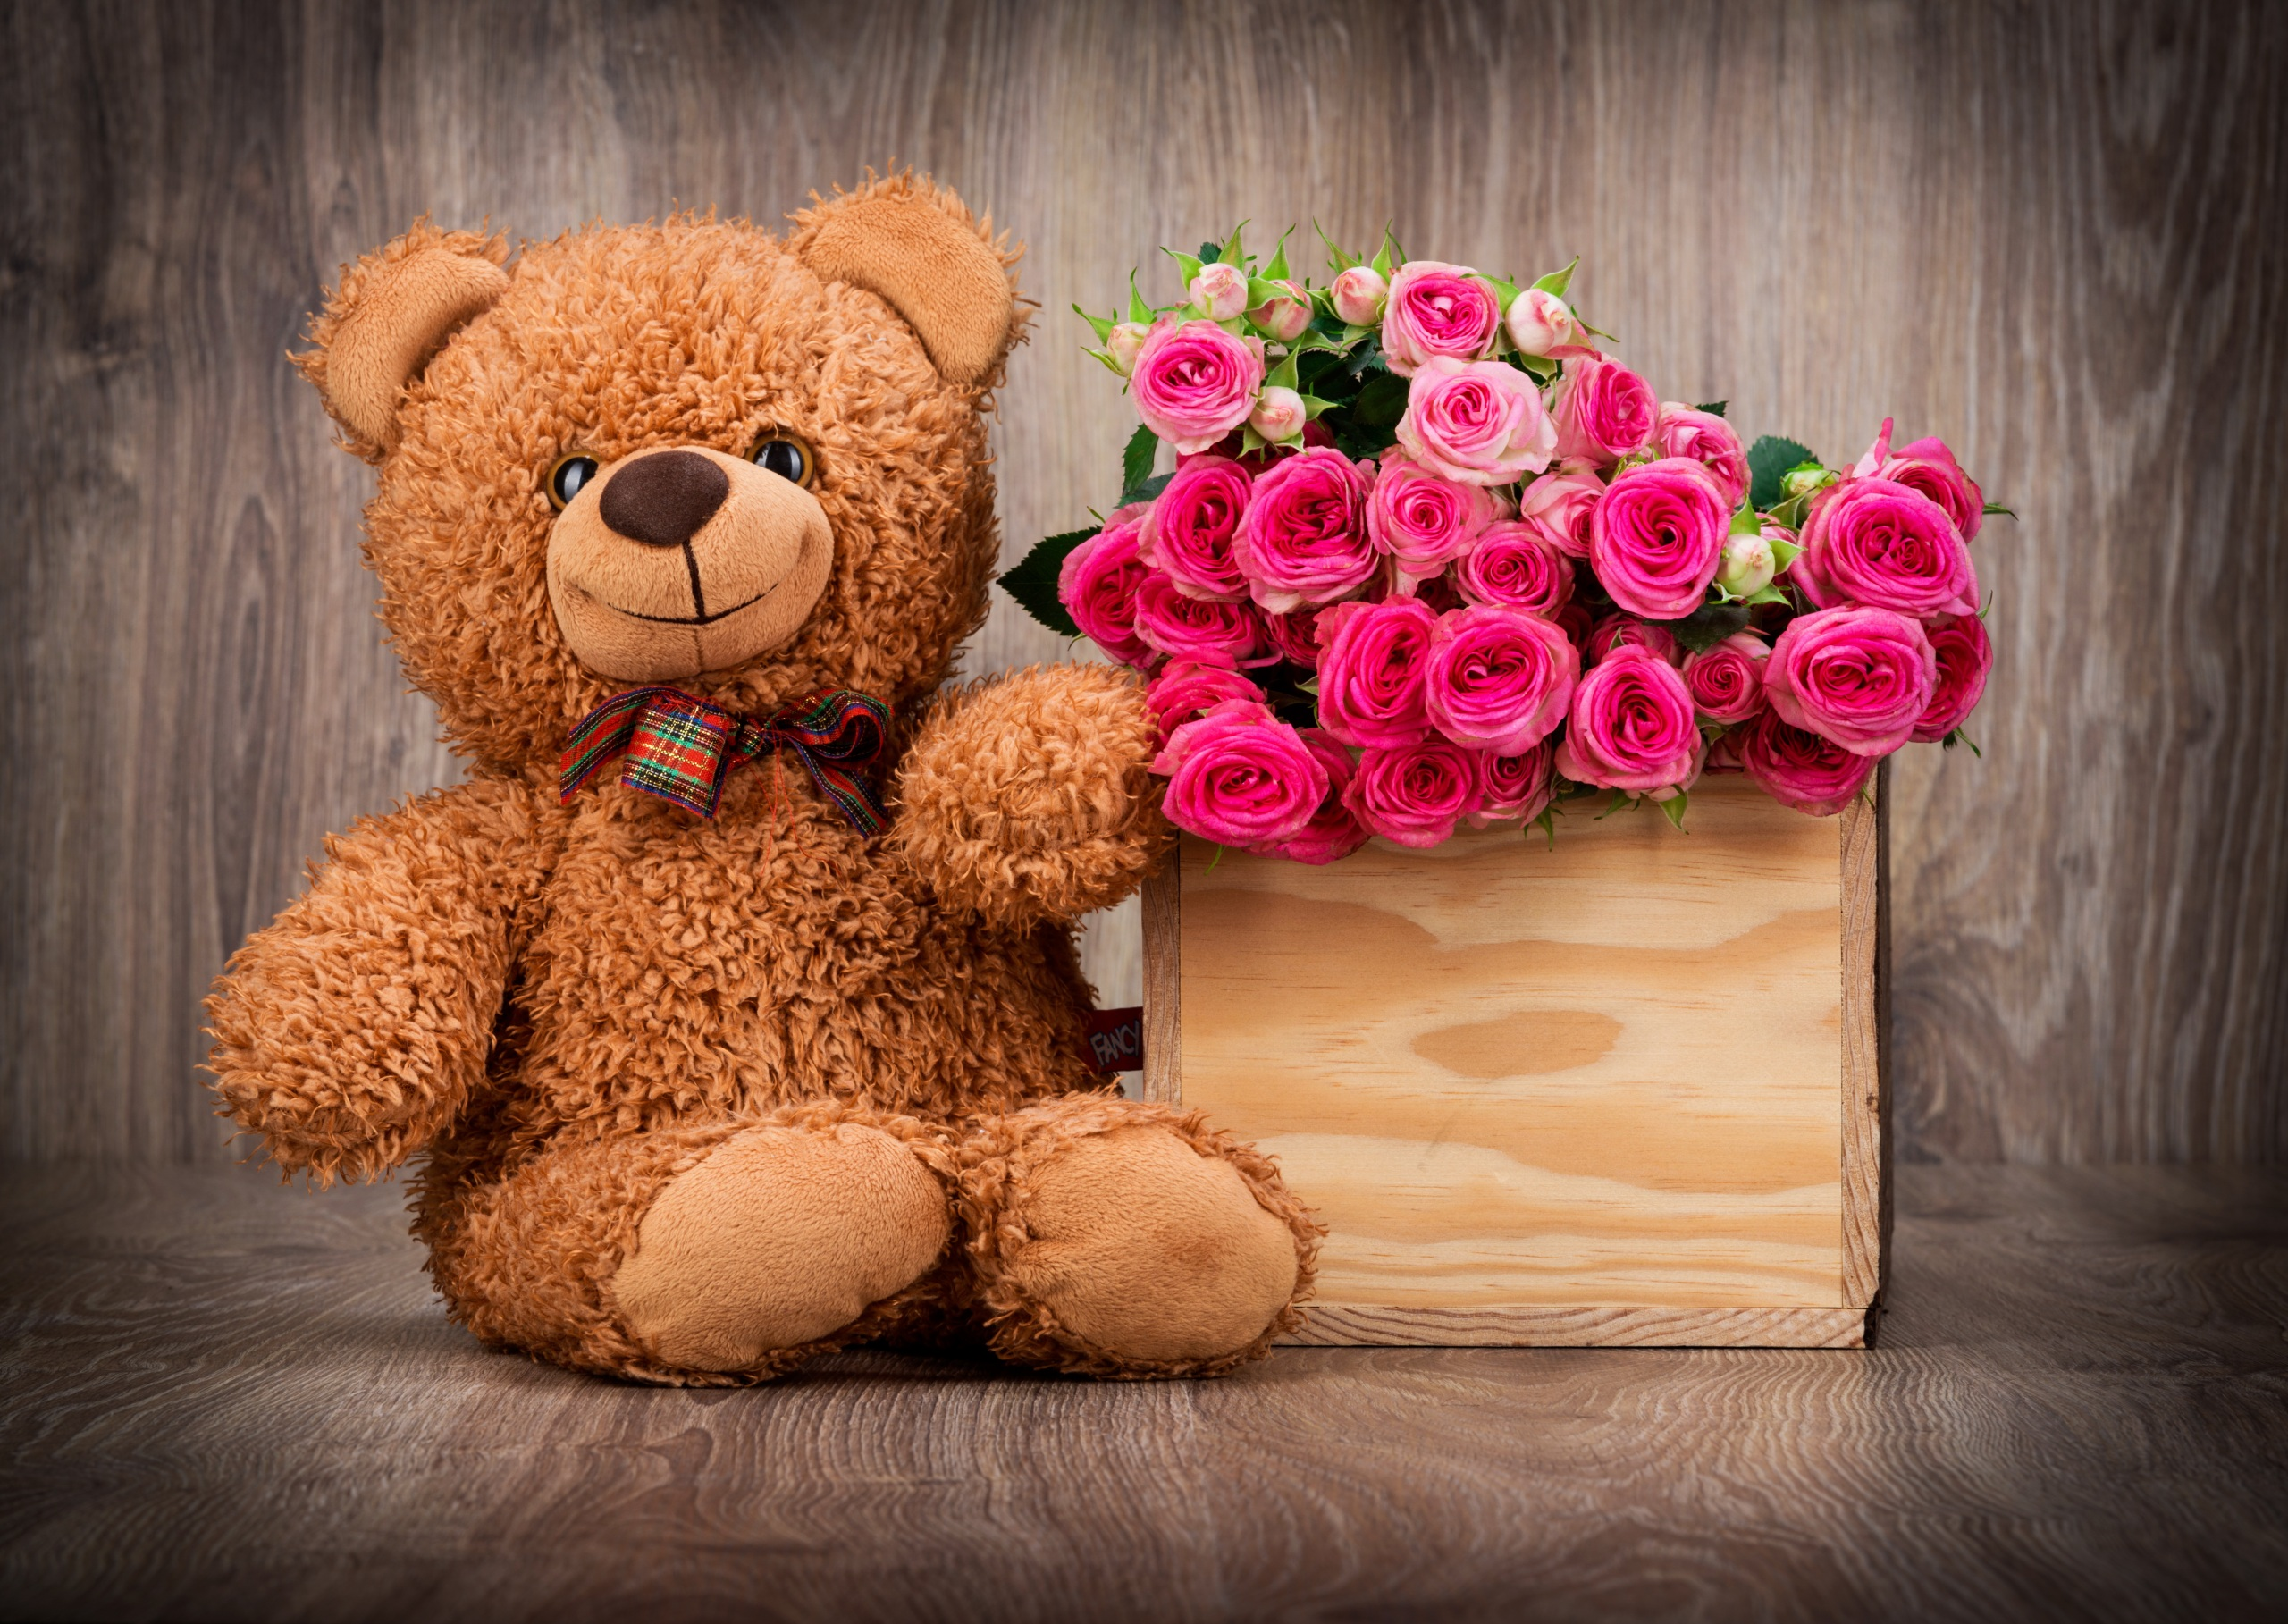 Love hd walpepar hd wallpapers wallpapers download high cute teddy bear wallpaper with pink roses in box love wallpapers voltagebd Image collections